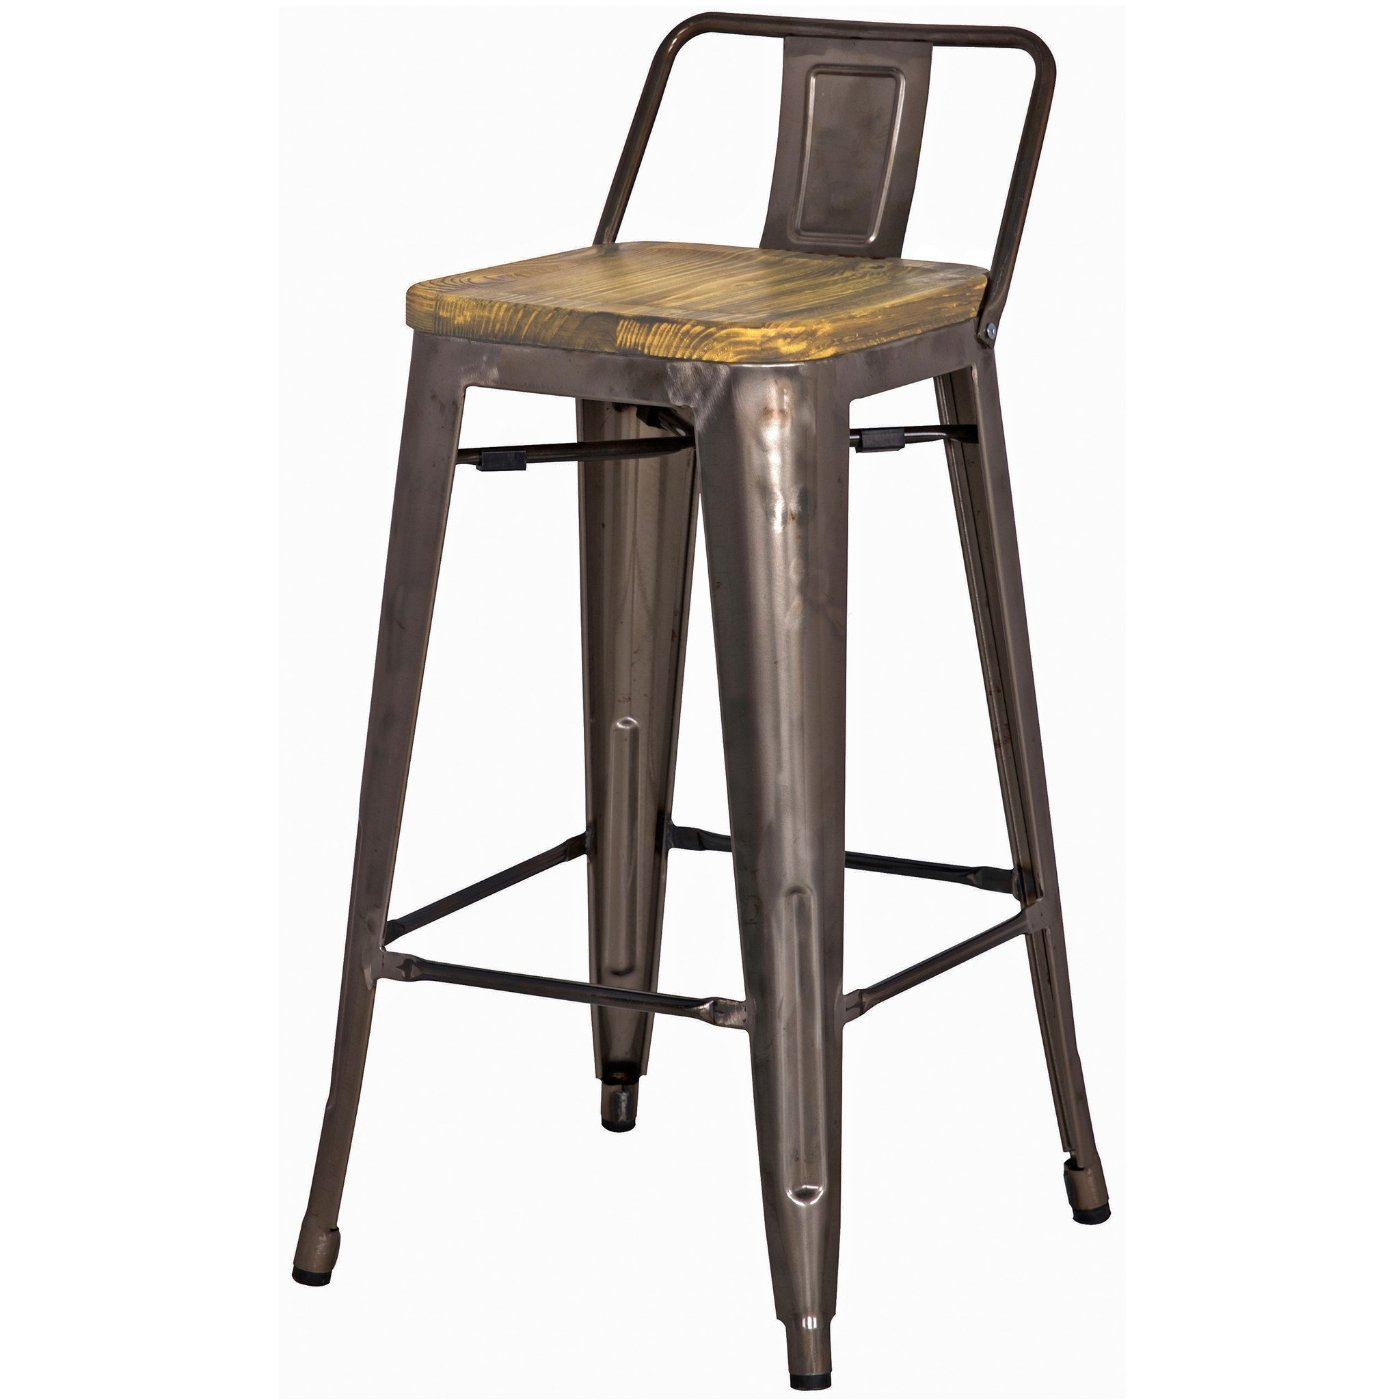 Grand Metal Low Back Counter Stool- Set of 4 GUNMETAL